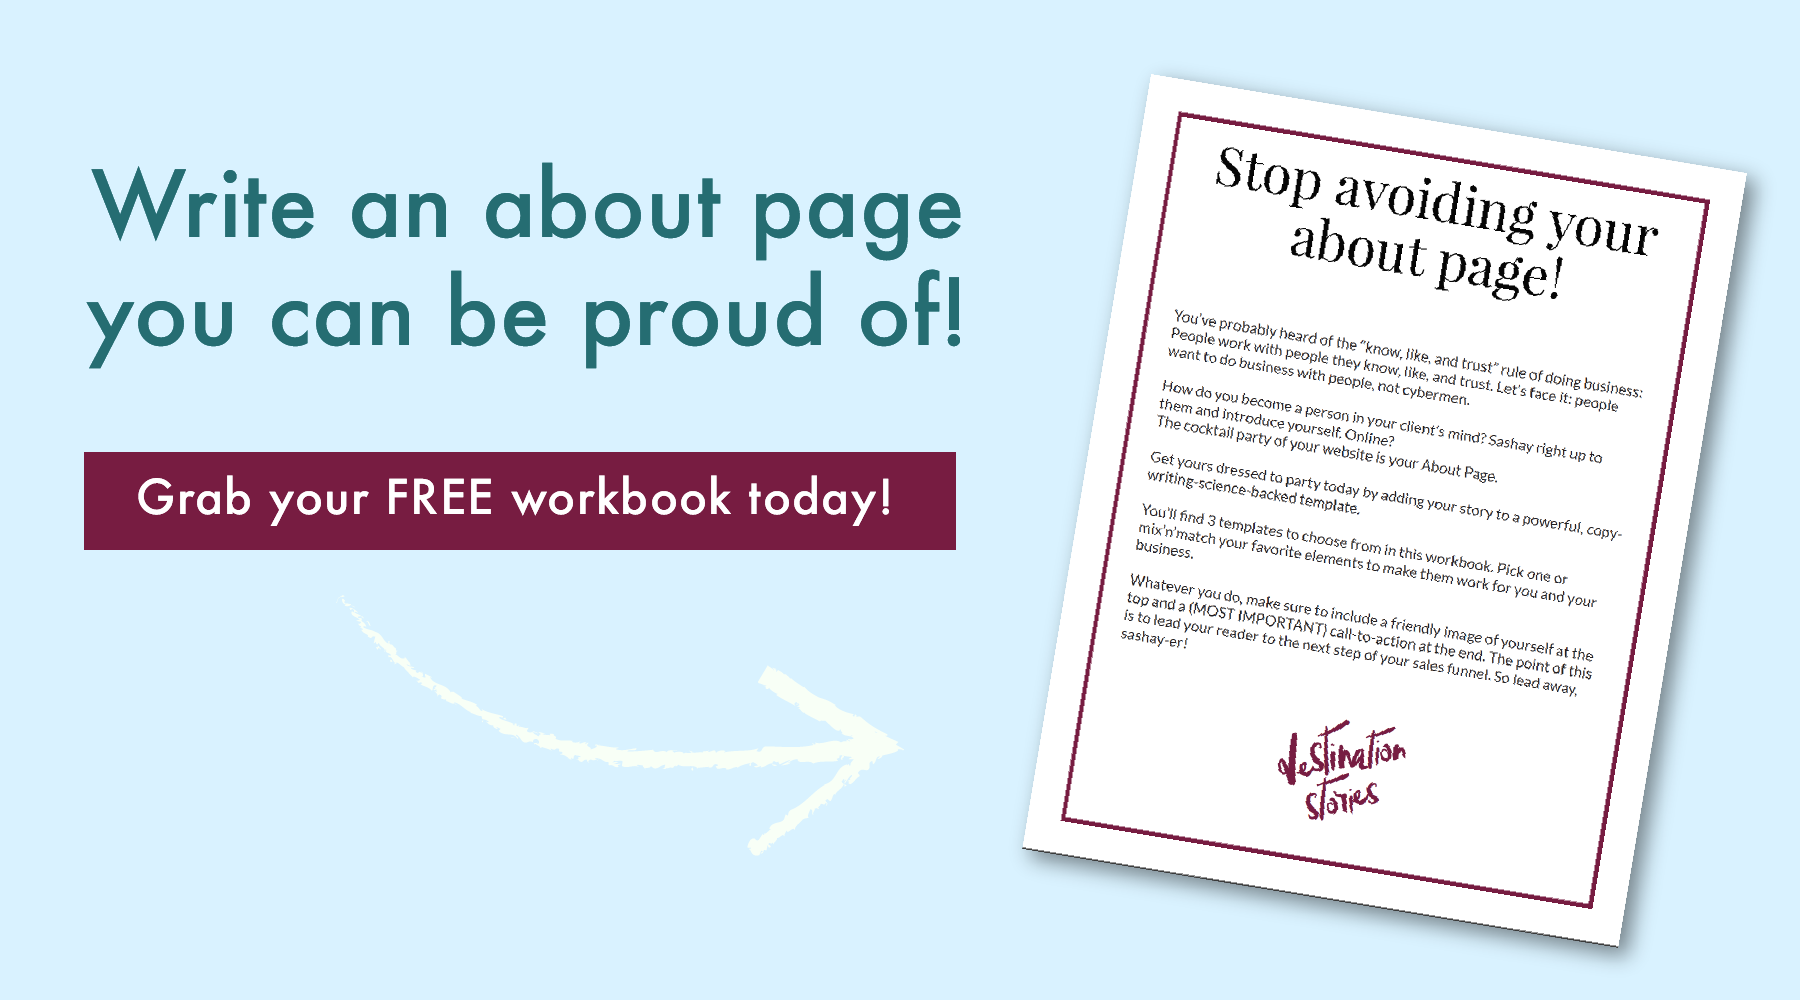 Write an about page you can be proud of!